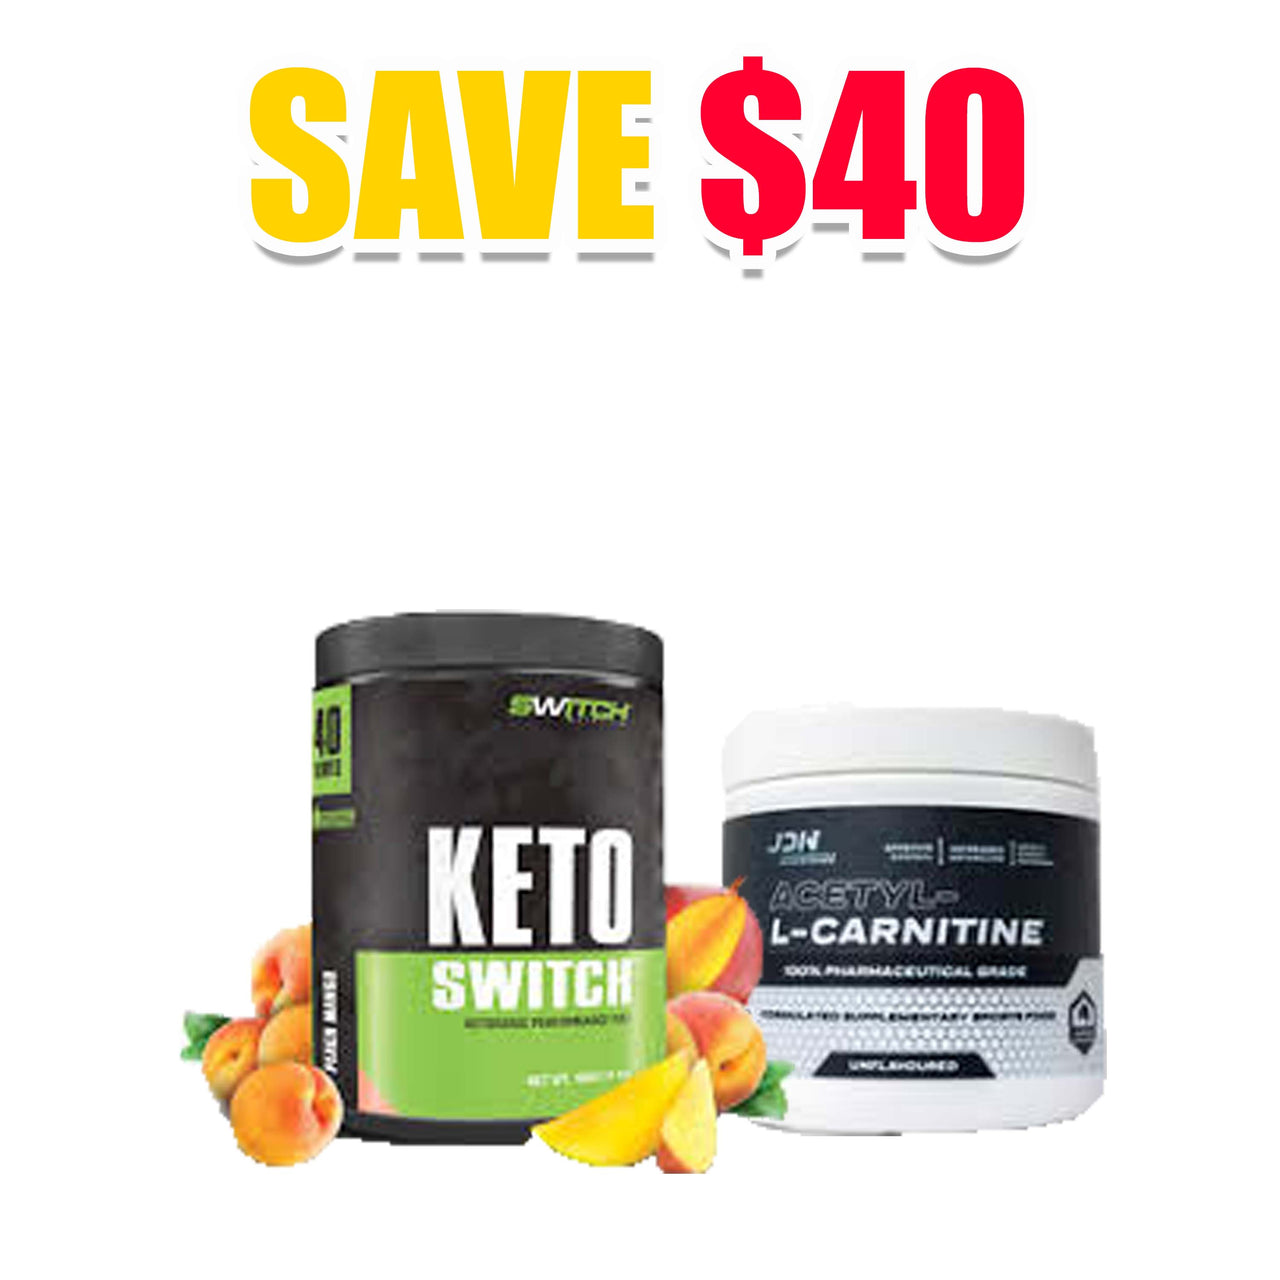 KETO Switch + L-Carnitine Stack, Nutrition Co Australia - Nutrition Co Australia